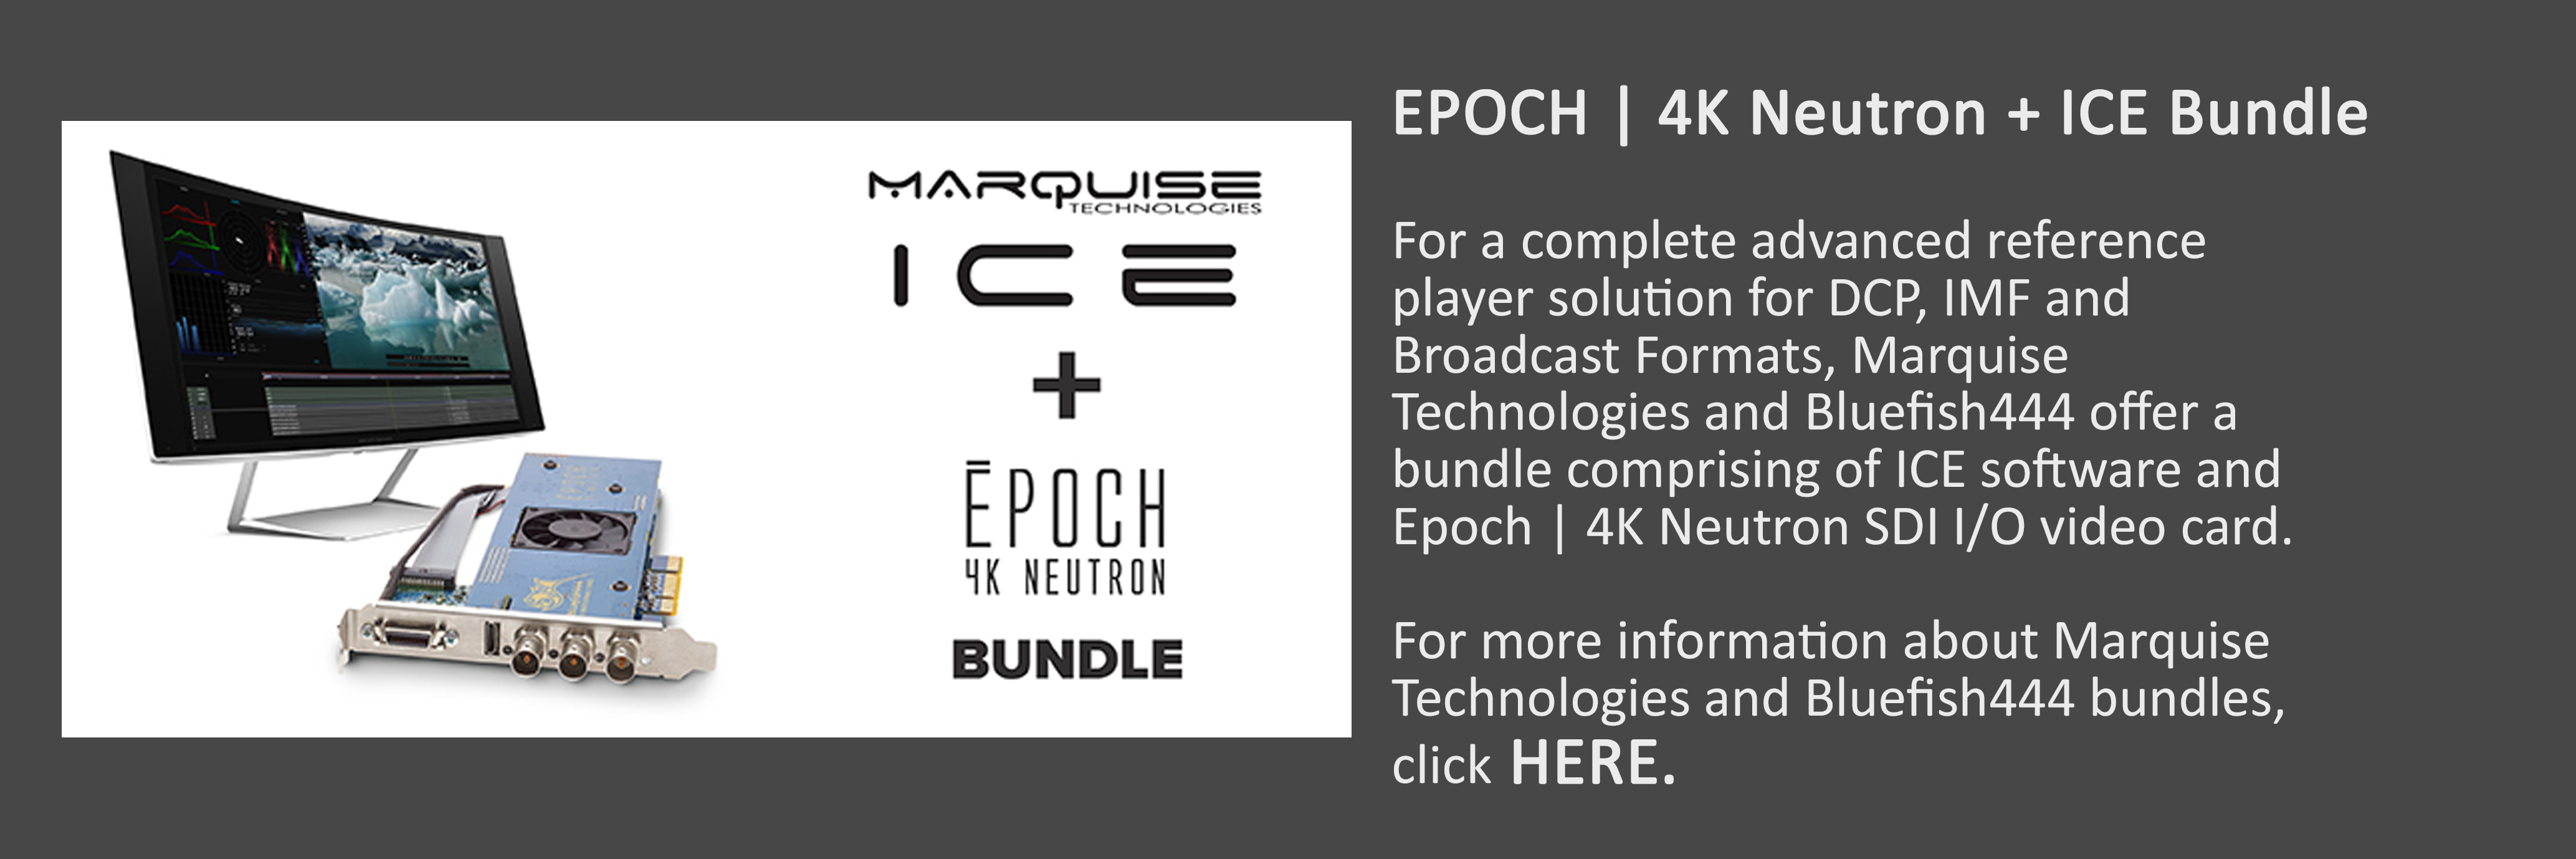 Bluefish444_IBC 2017 News_Marquise technologies & Bluefish444 Bundle